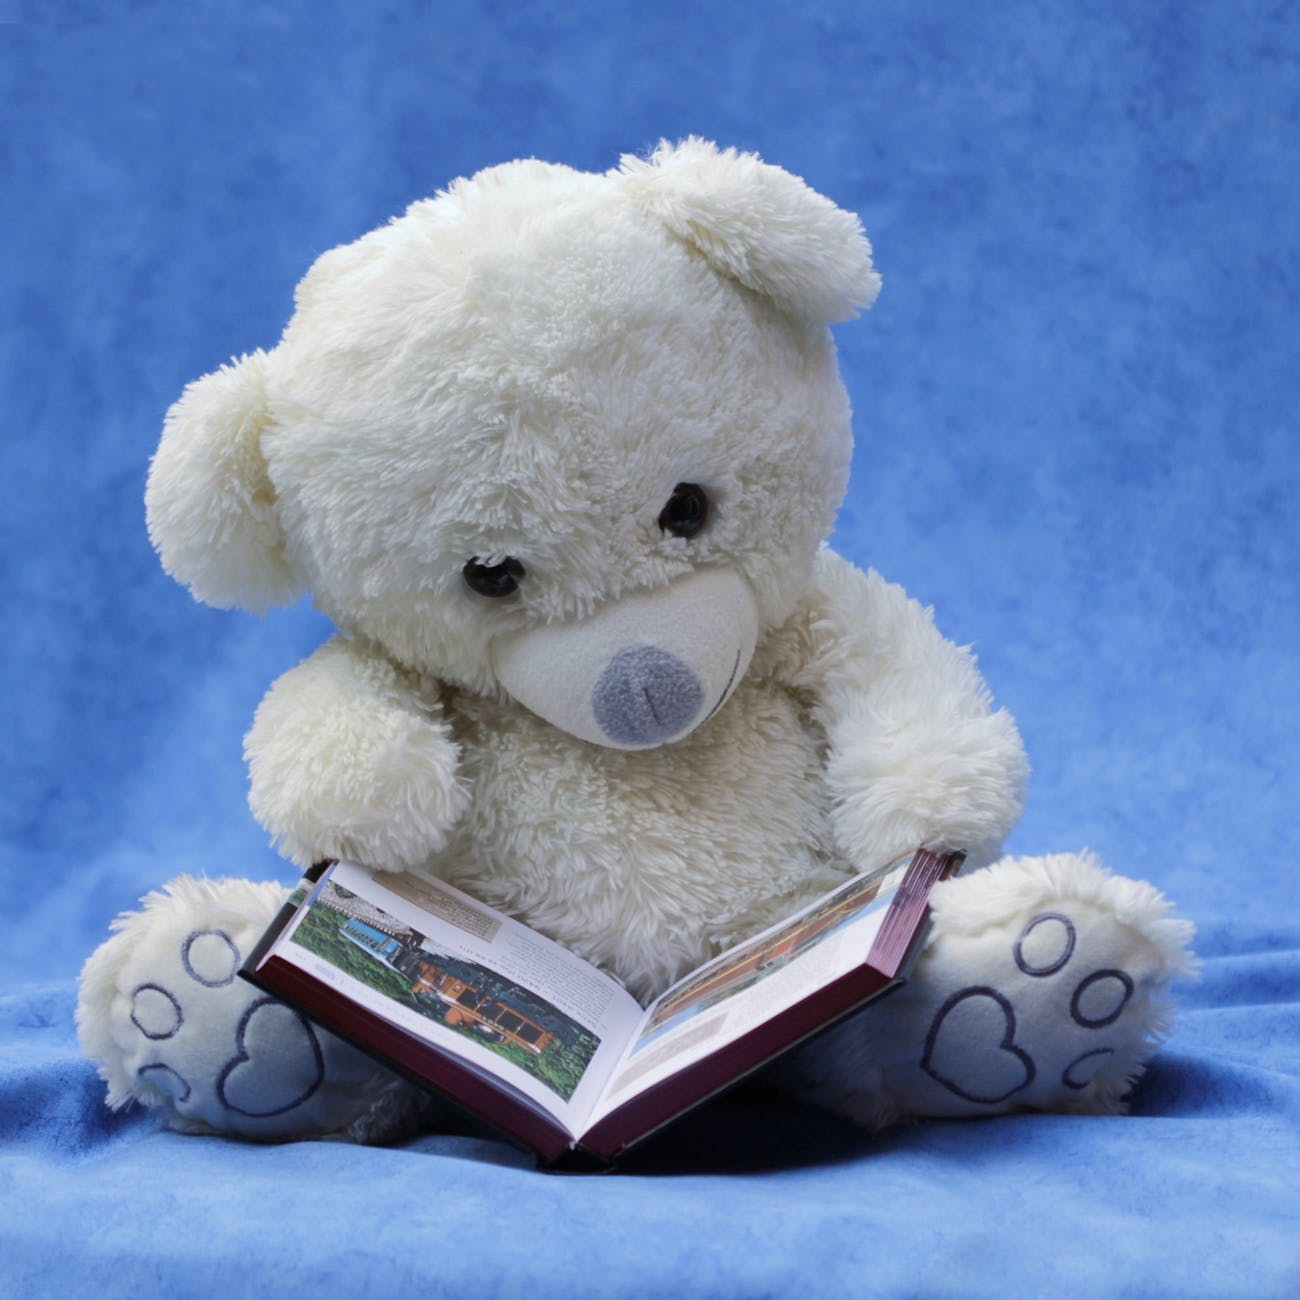 white teddy bear with opened book photo